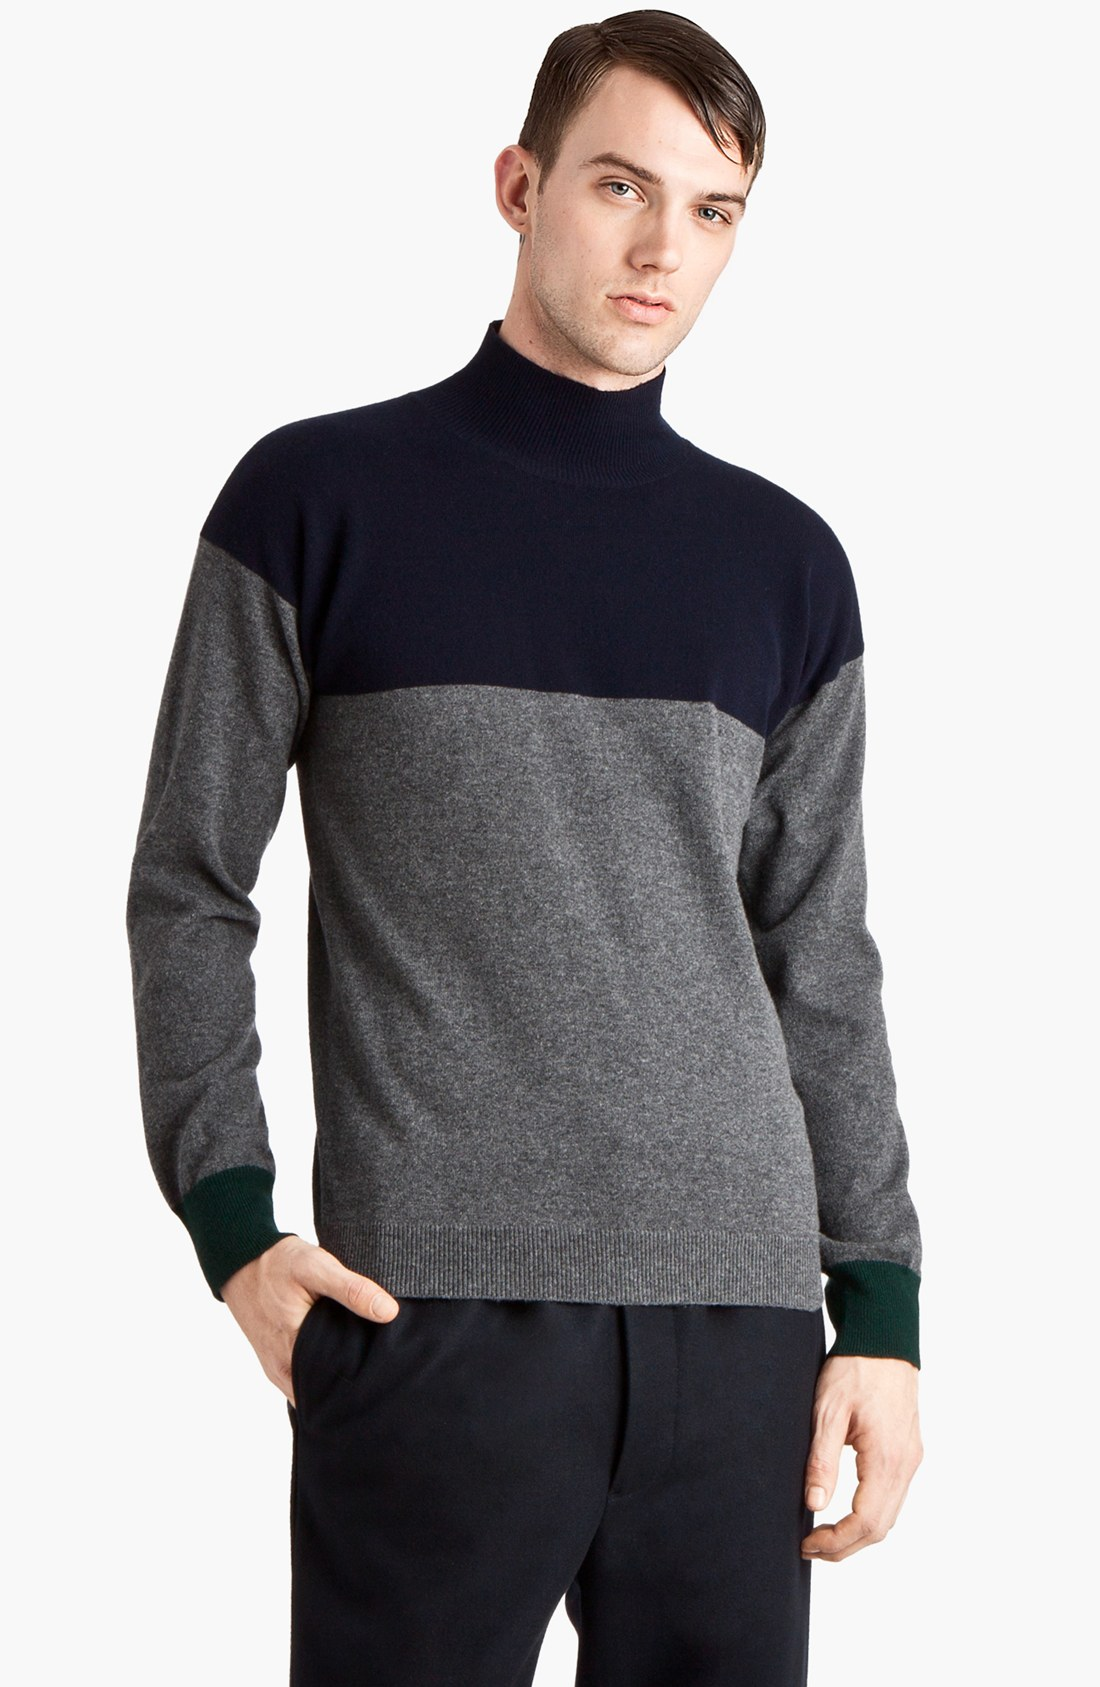 Marni Cashmere Mock Turtleneck Sweater In Gray For Men